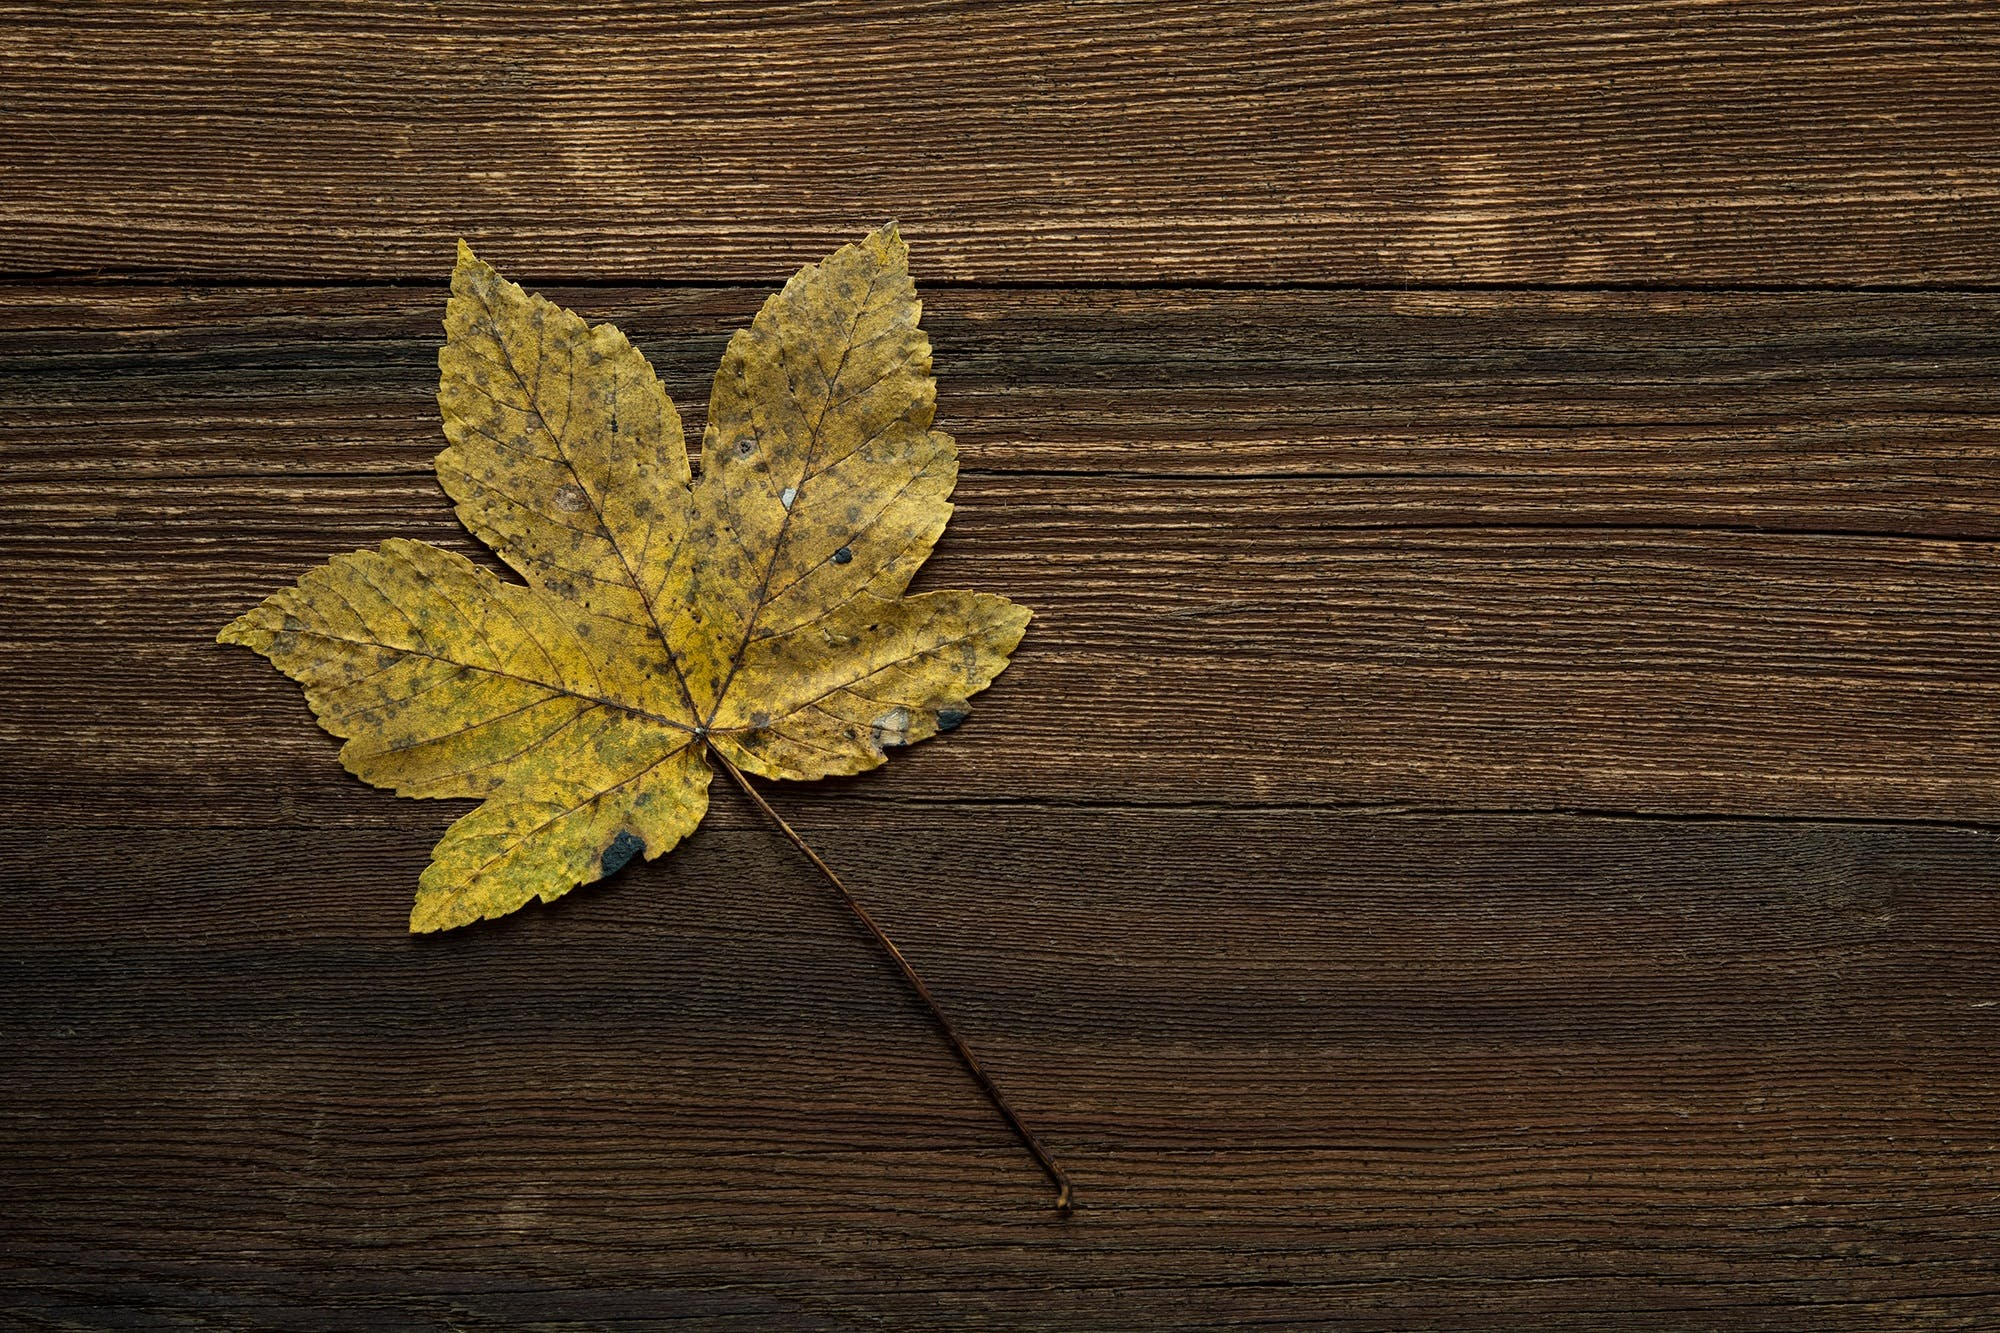 Free stock photo of table, leaf, HD wallpaper